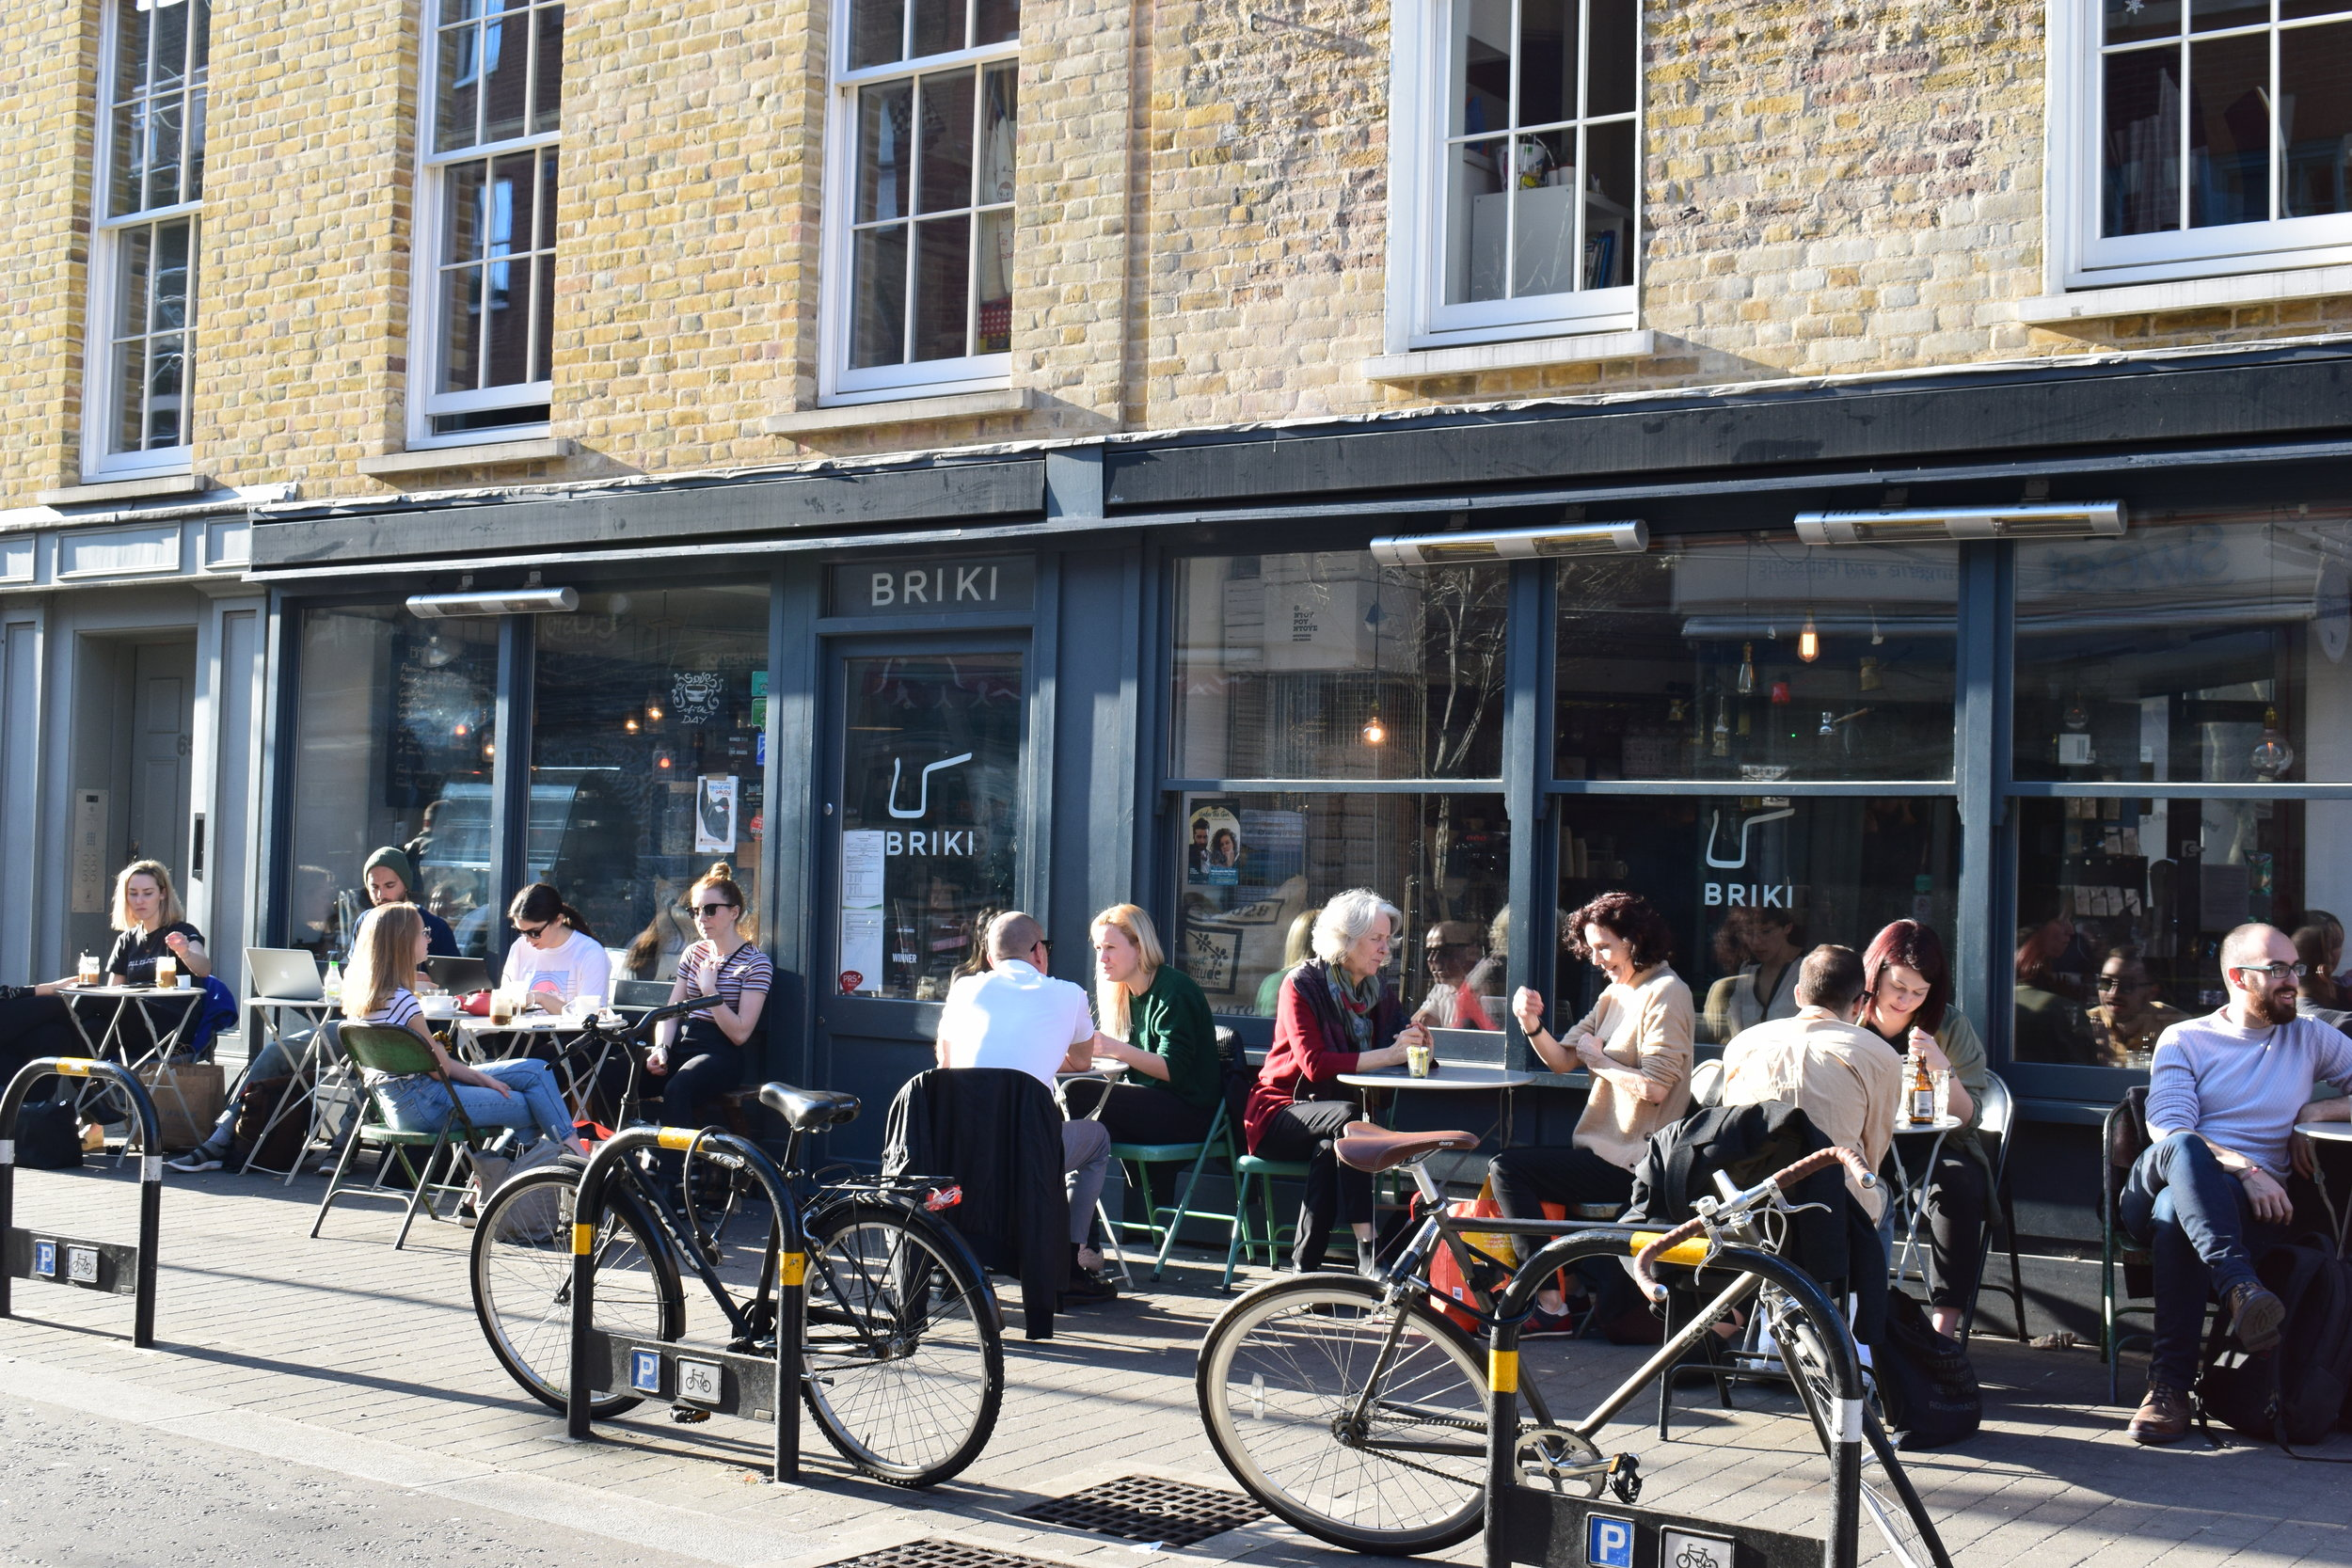 Briki is a Greek deli and cafe on Exmouth Market that's popular with the local Greek residents. Photo from Brik.